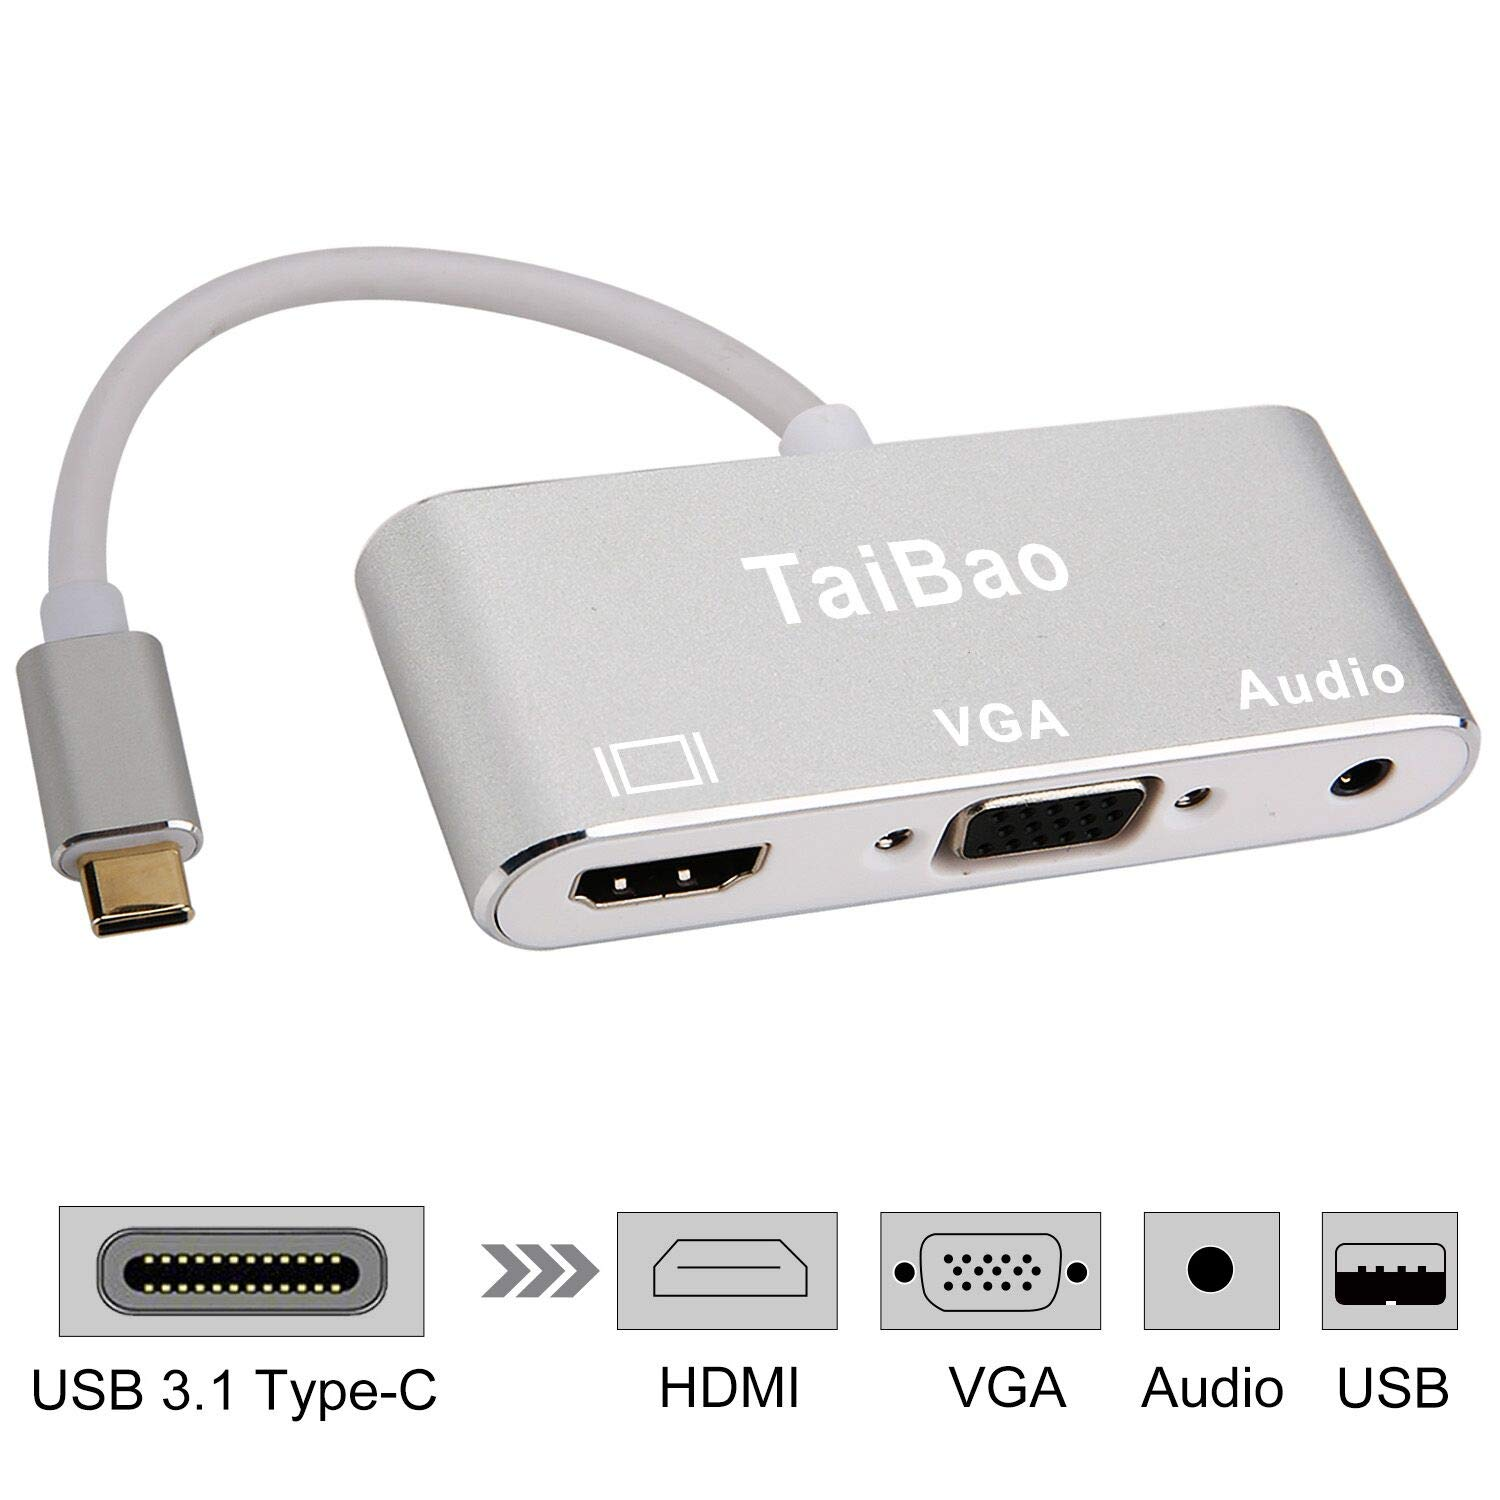 USB C to HDMI VGA Adapter, TaiBao USB Type C to HDMI VGA Adapter with Audio Multi Monitor Display for MacBook Pro 2017/Samsung Galaxy S8/S8 Plus/S9/Note 8/Dell Etc.